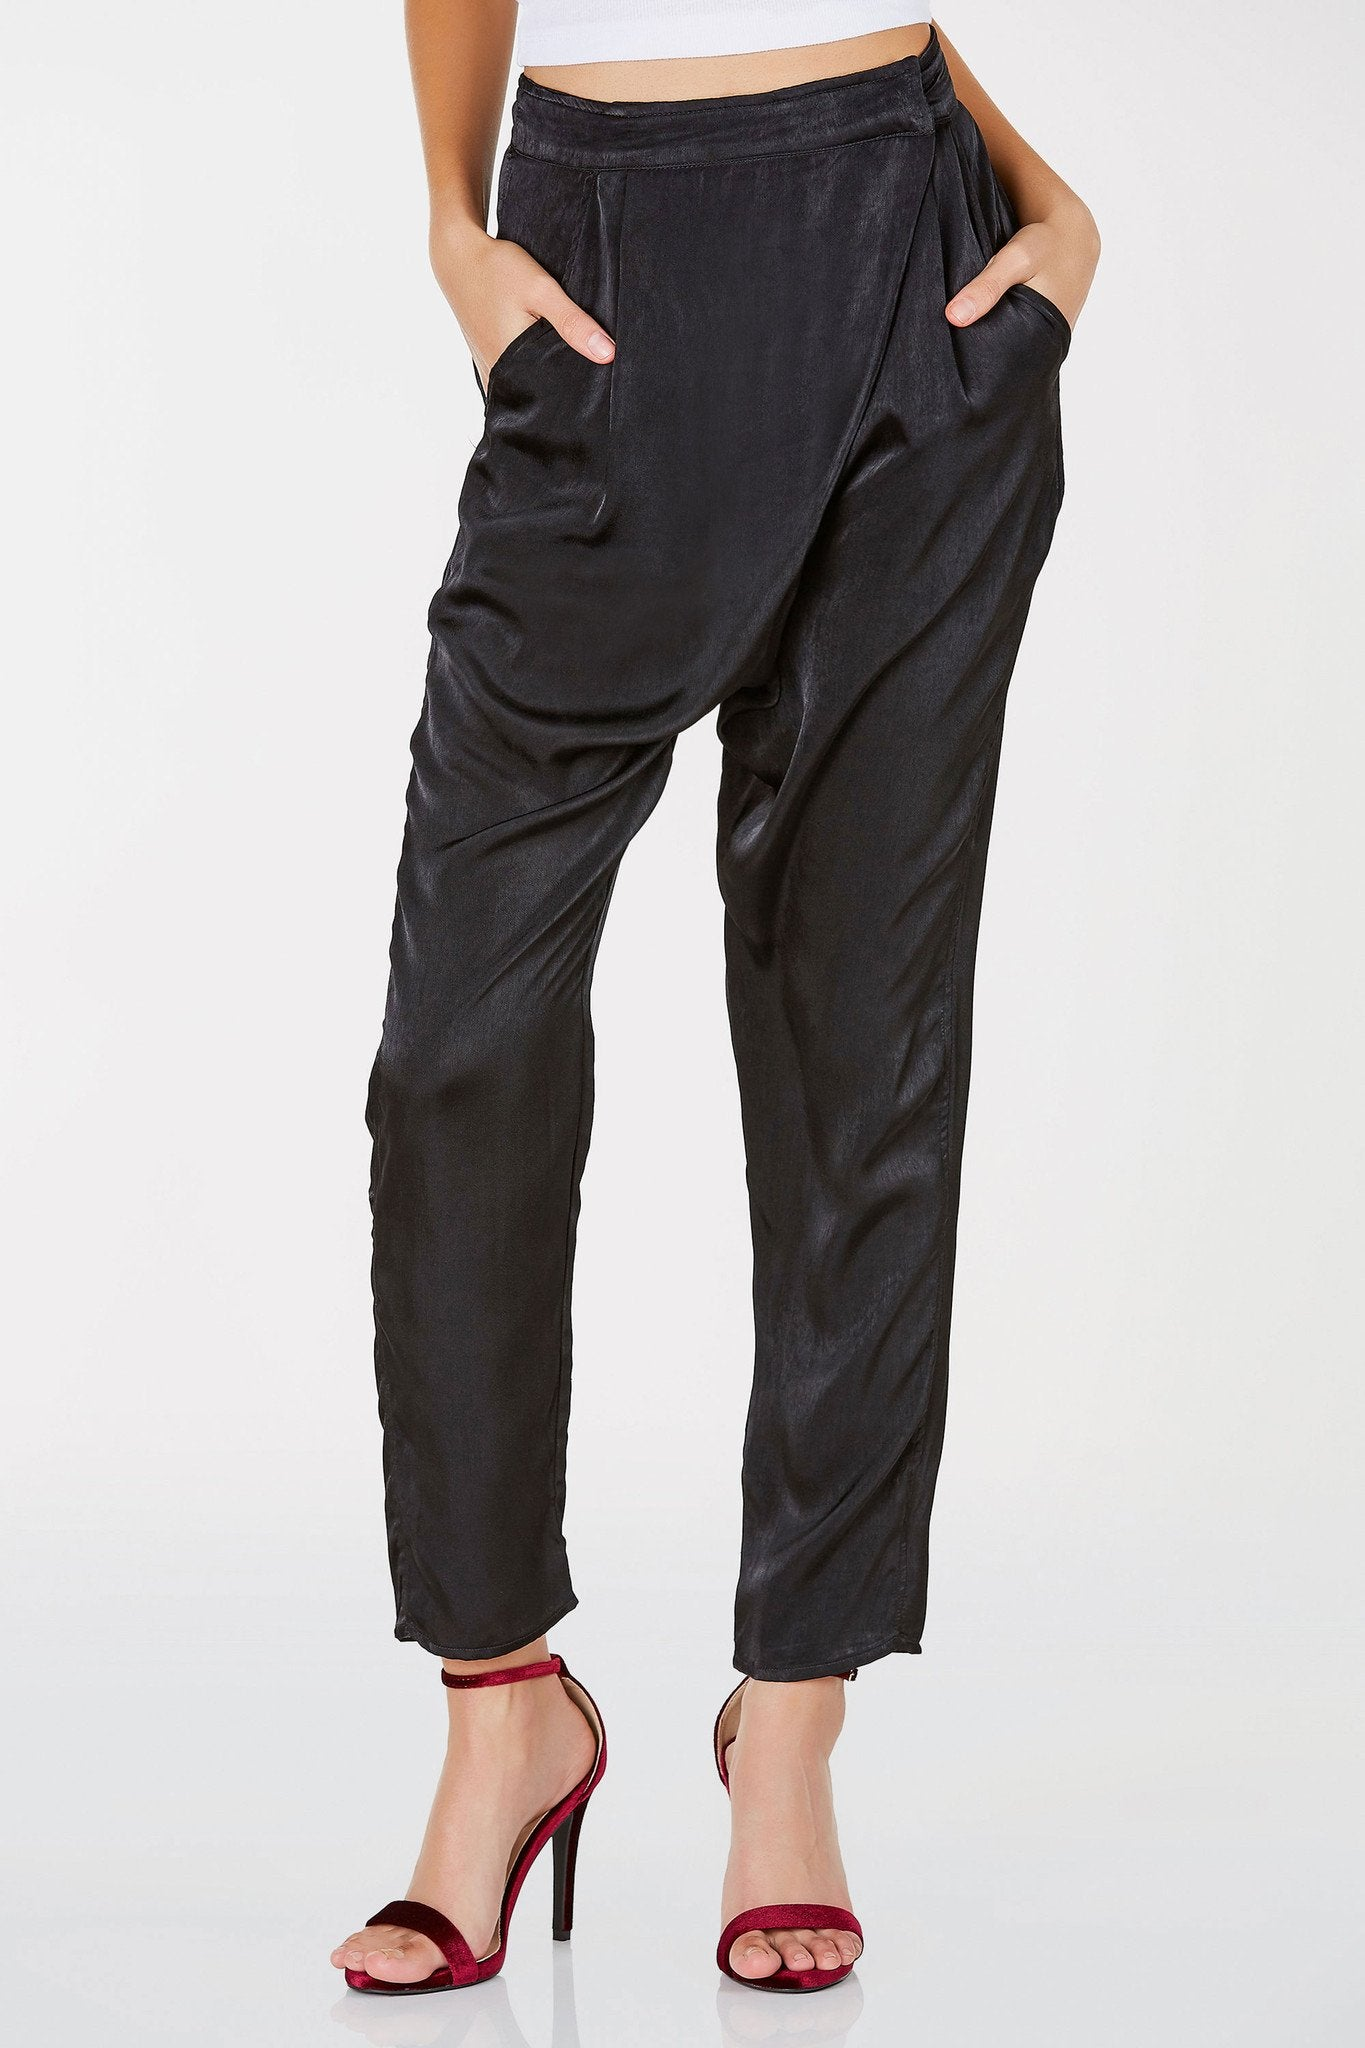 These amazing pair of pants will bring you comfort and style with ease. Chic wrap design in front for closure with a gorgeous satin finish. Super lightweight makes it perfect to style all year round by layering a pair of thermals underneath to combat the cold. Great to work and even special date nights!